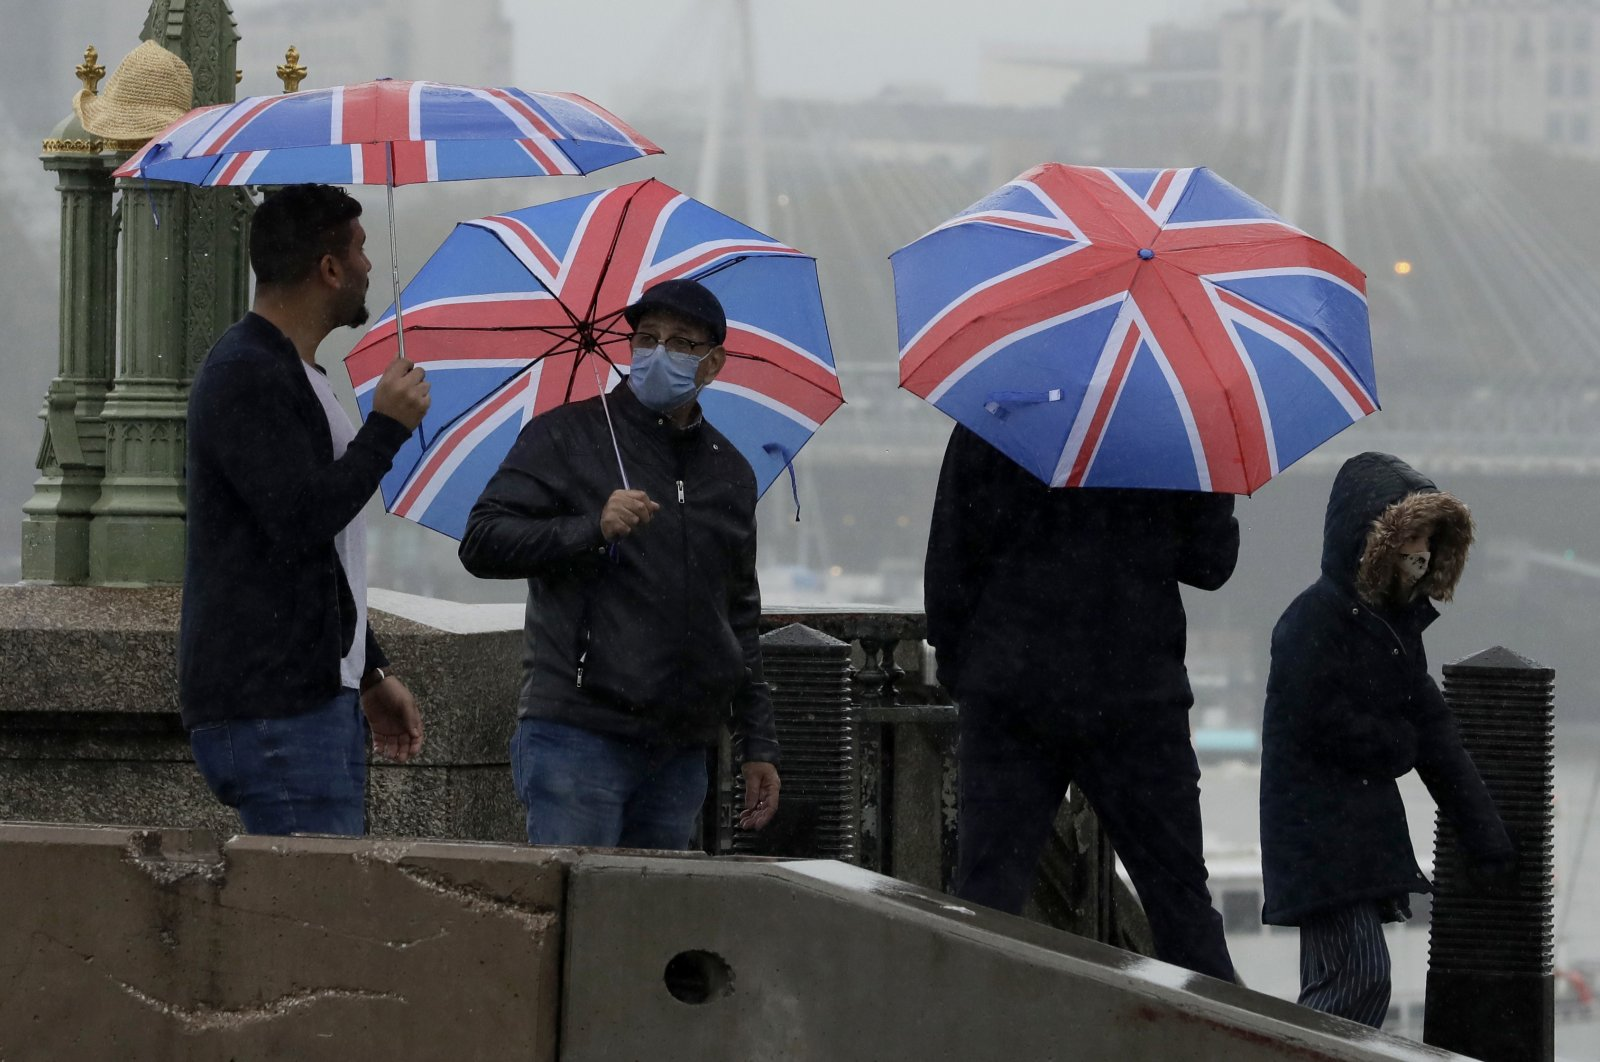 A man wearing a face mask to try to curb the spread of coronavirus holds a British union flag umbrella on Westminster Bridge in central London, Wednesday, Oct. 21, 2020. (AP Photo)